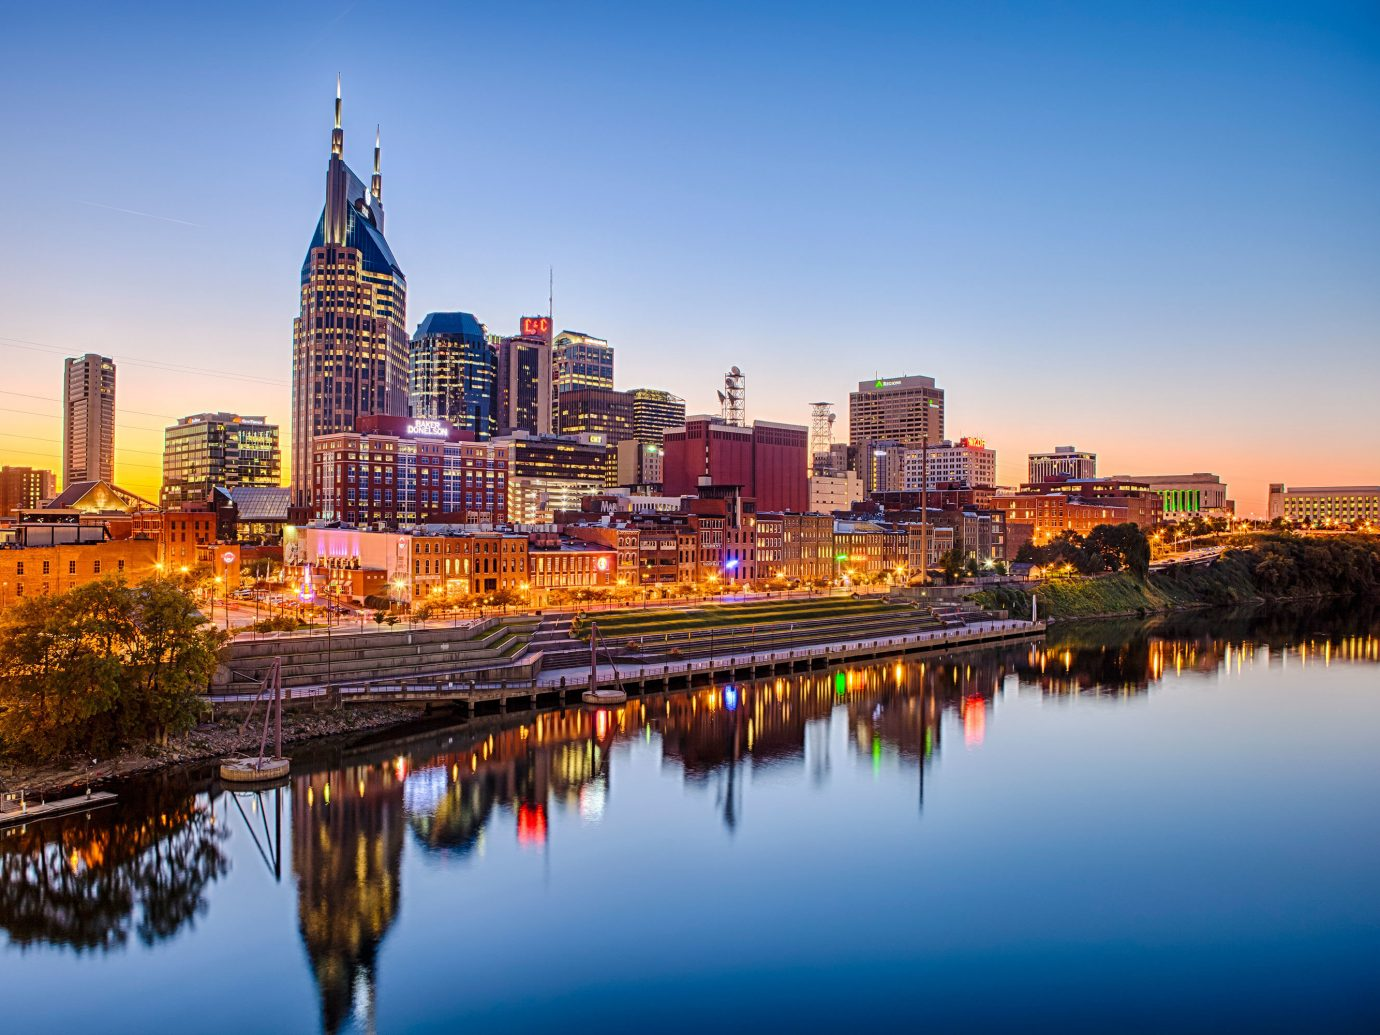 Boutique Hotels Hotels Trip Ideas water outdoor sky skyline reflection scene cityscape City geographical feature horizon landmark Harbor skyscraper human settlement urban area dusk evening River night morning metropolis Downtown Sunset dawn panorama